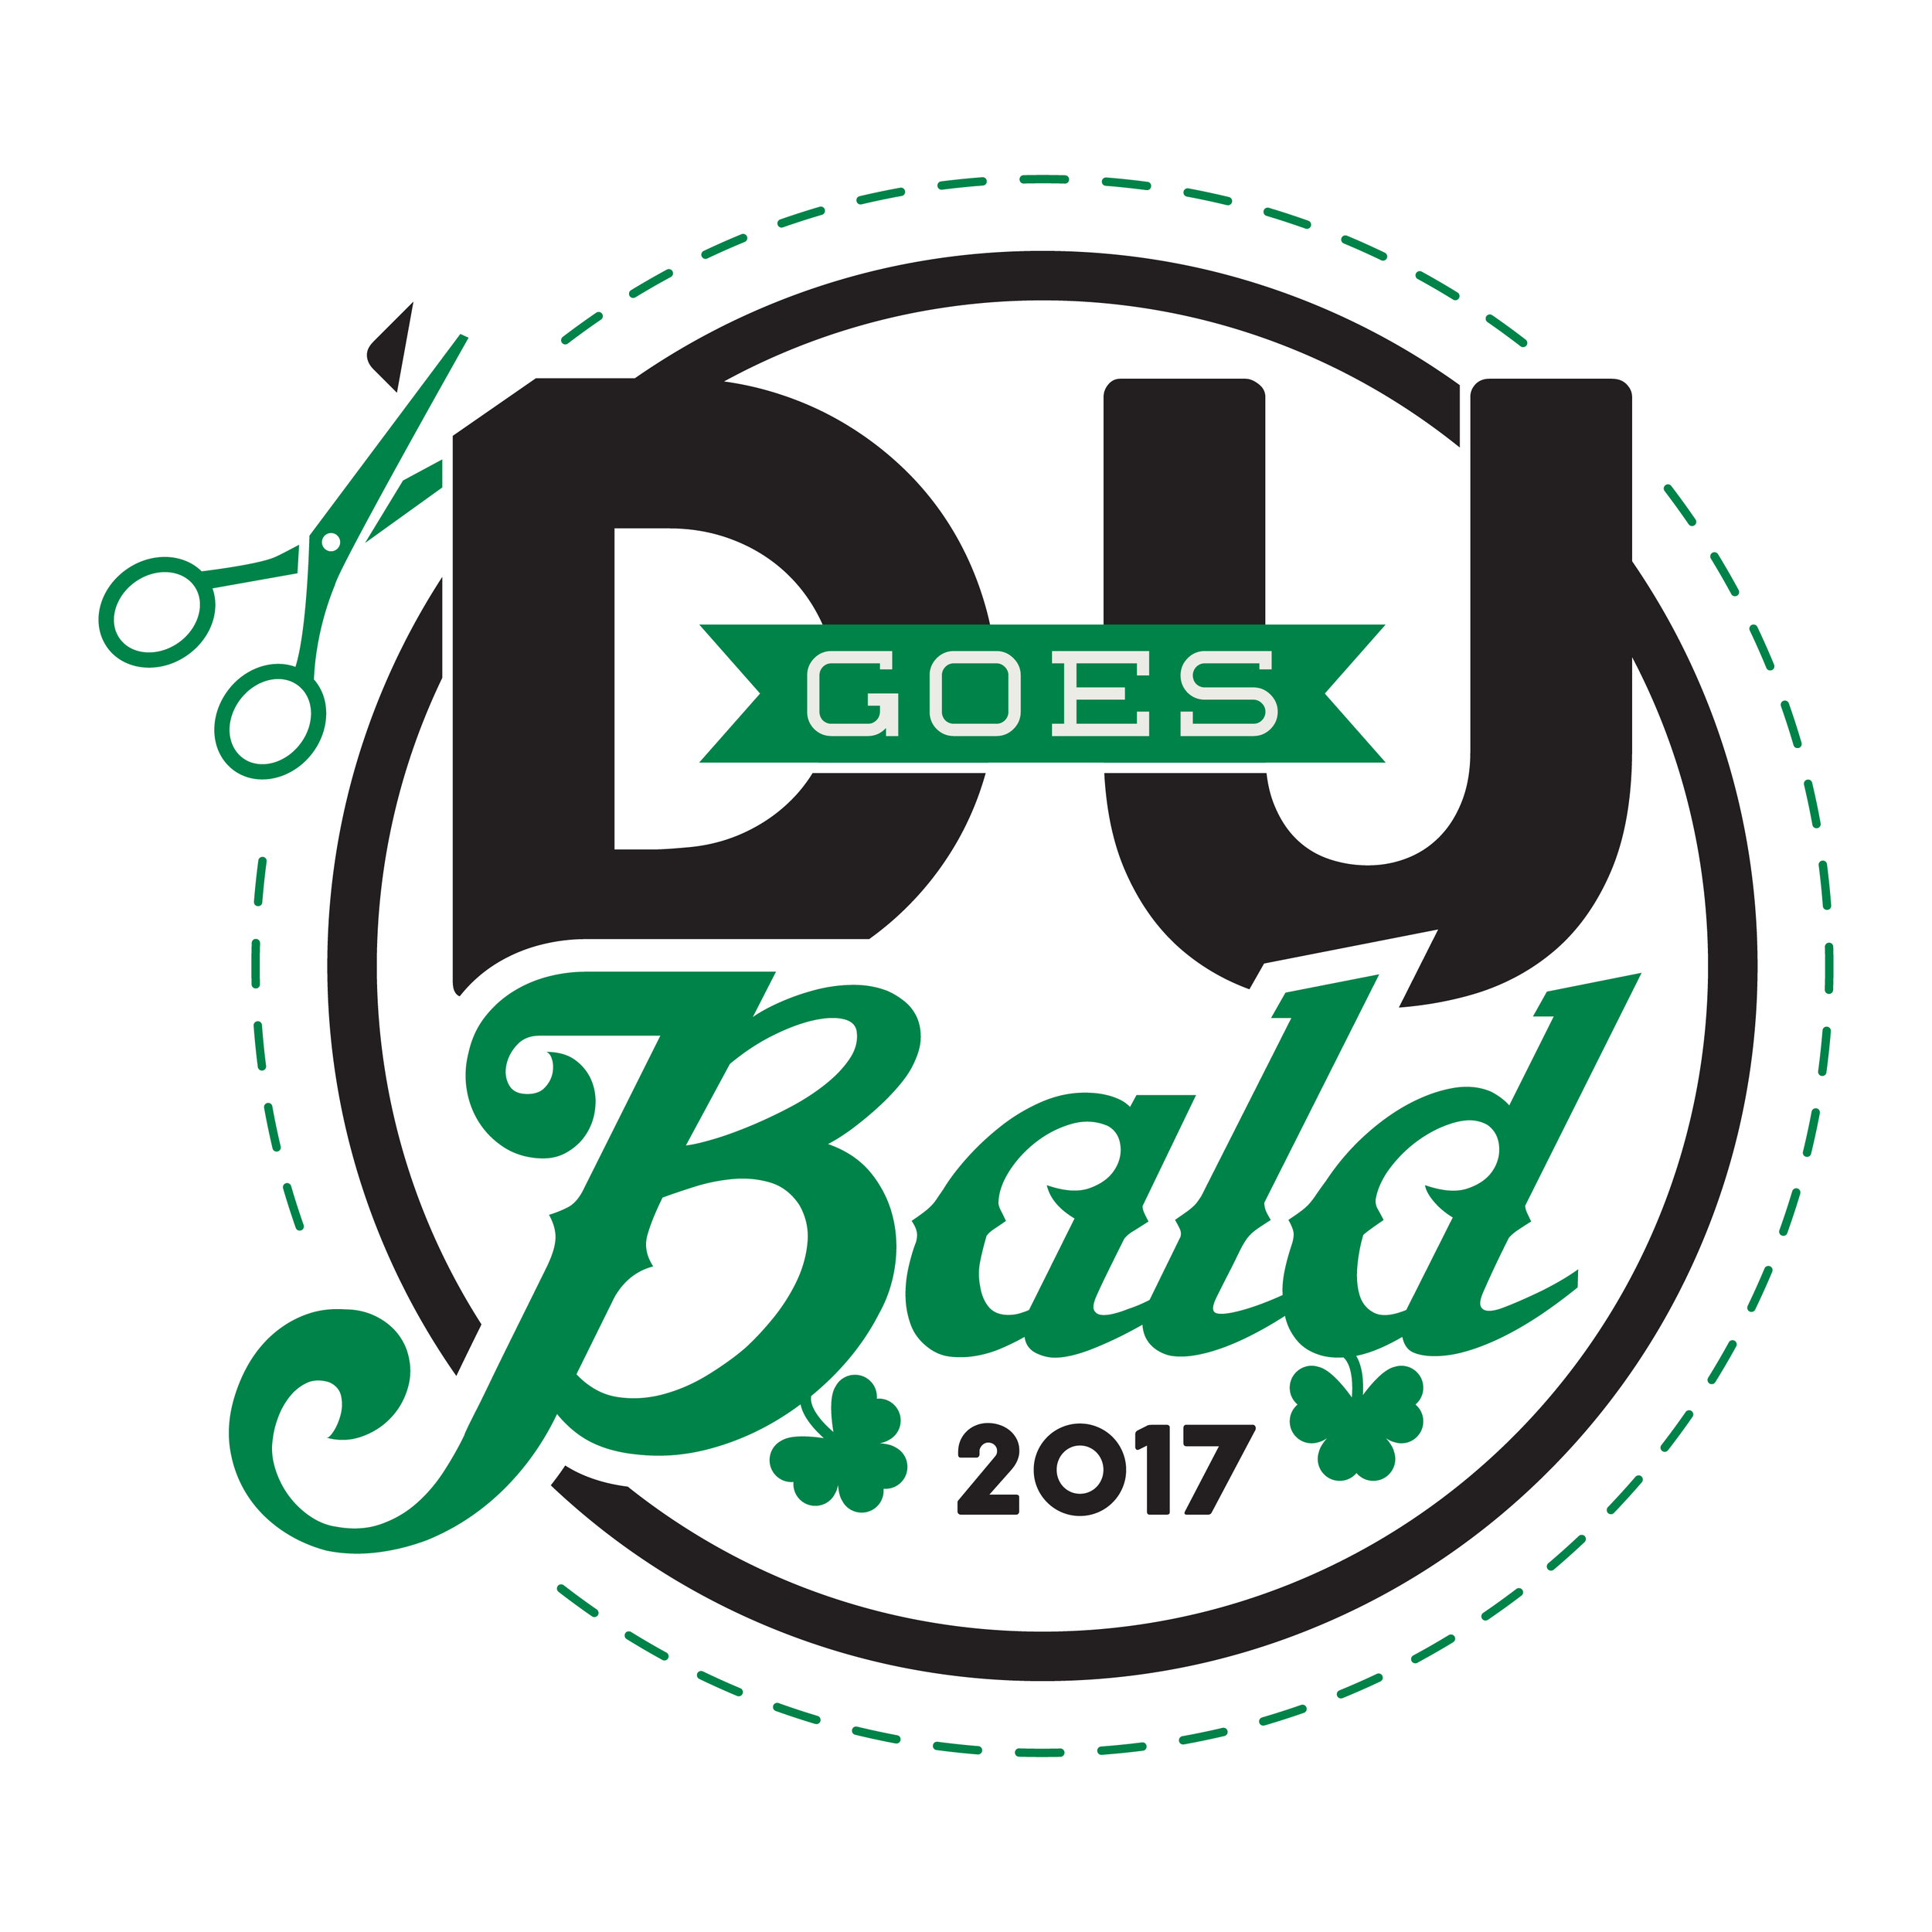 DU Goes Bald logo created for the St. Baldrick's event to raise money for children's cancer research.